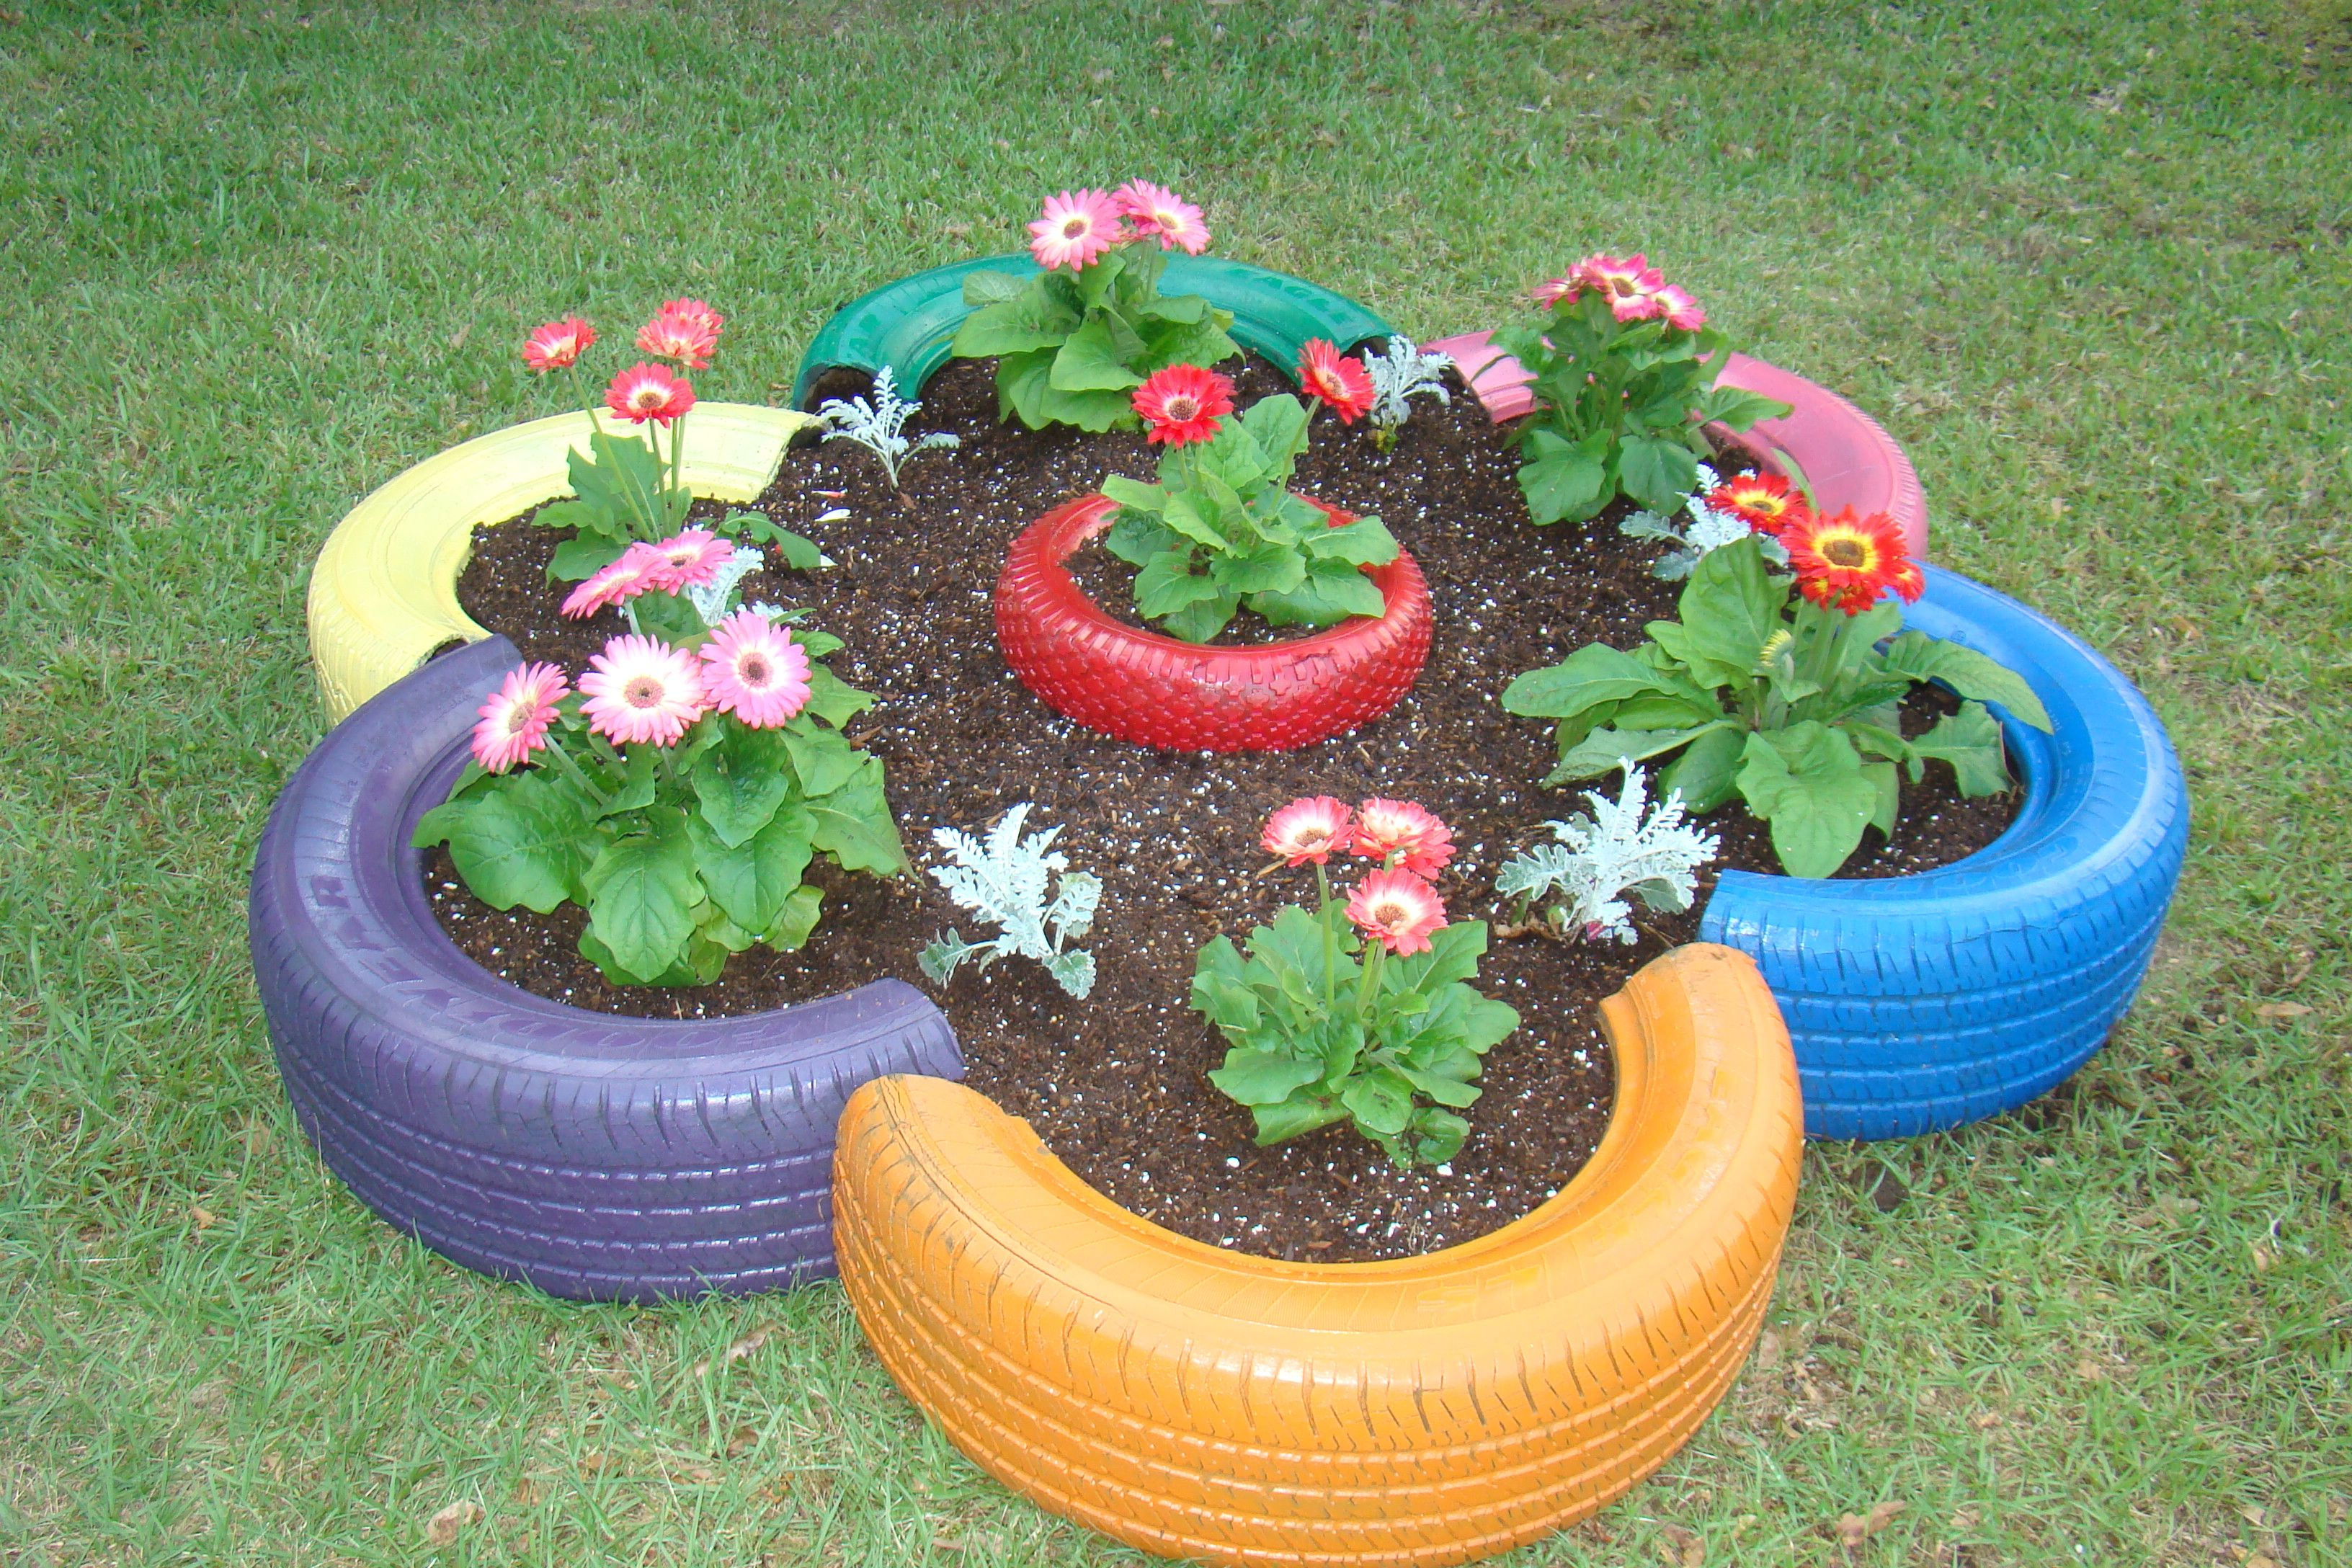 Flower bed made from old tires and small tire in the Things to make out of old tires